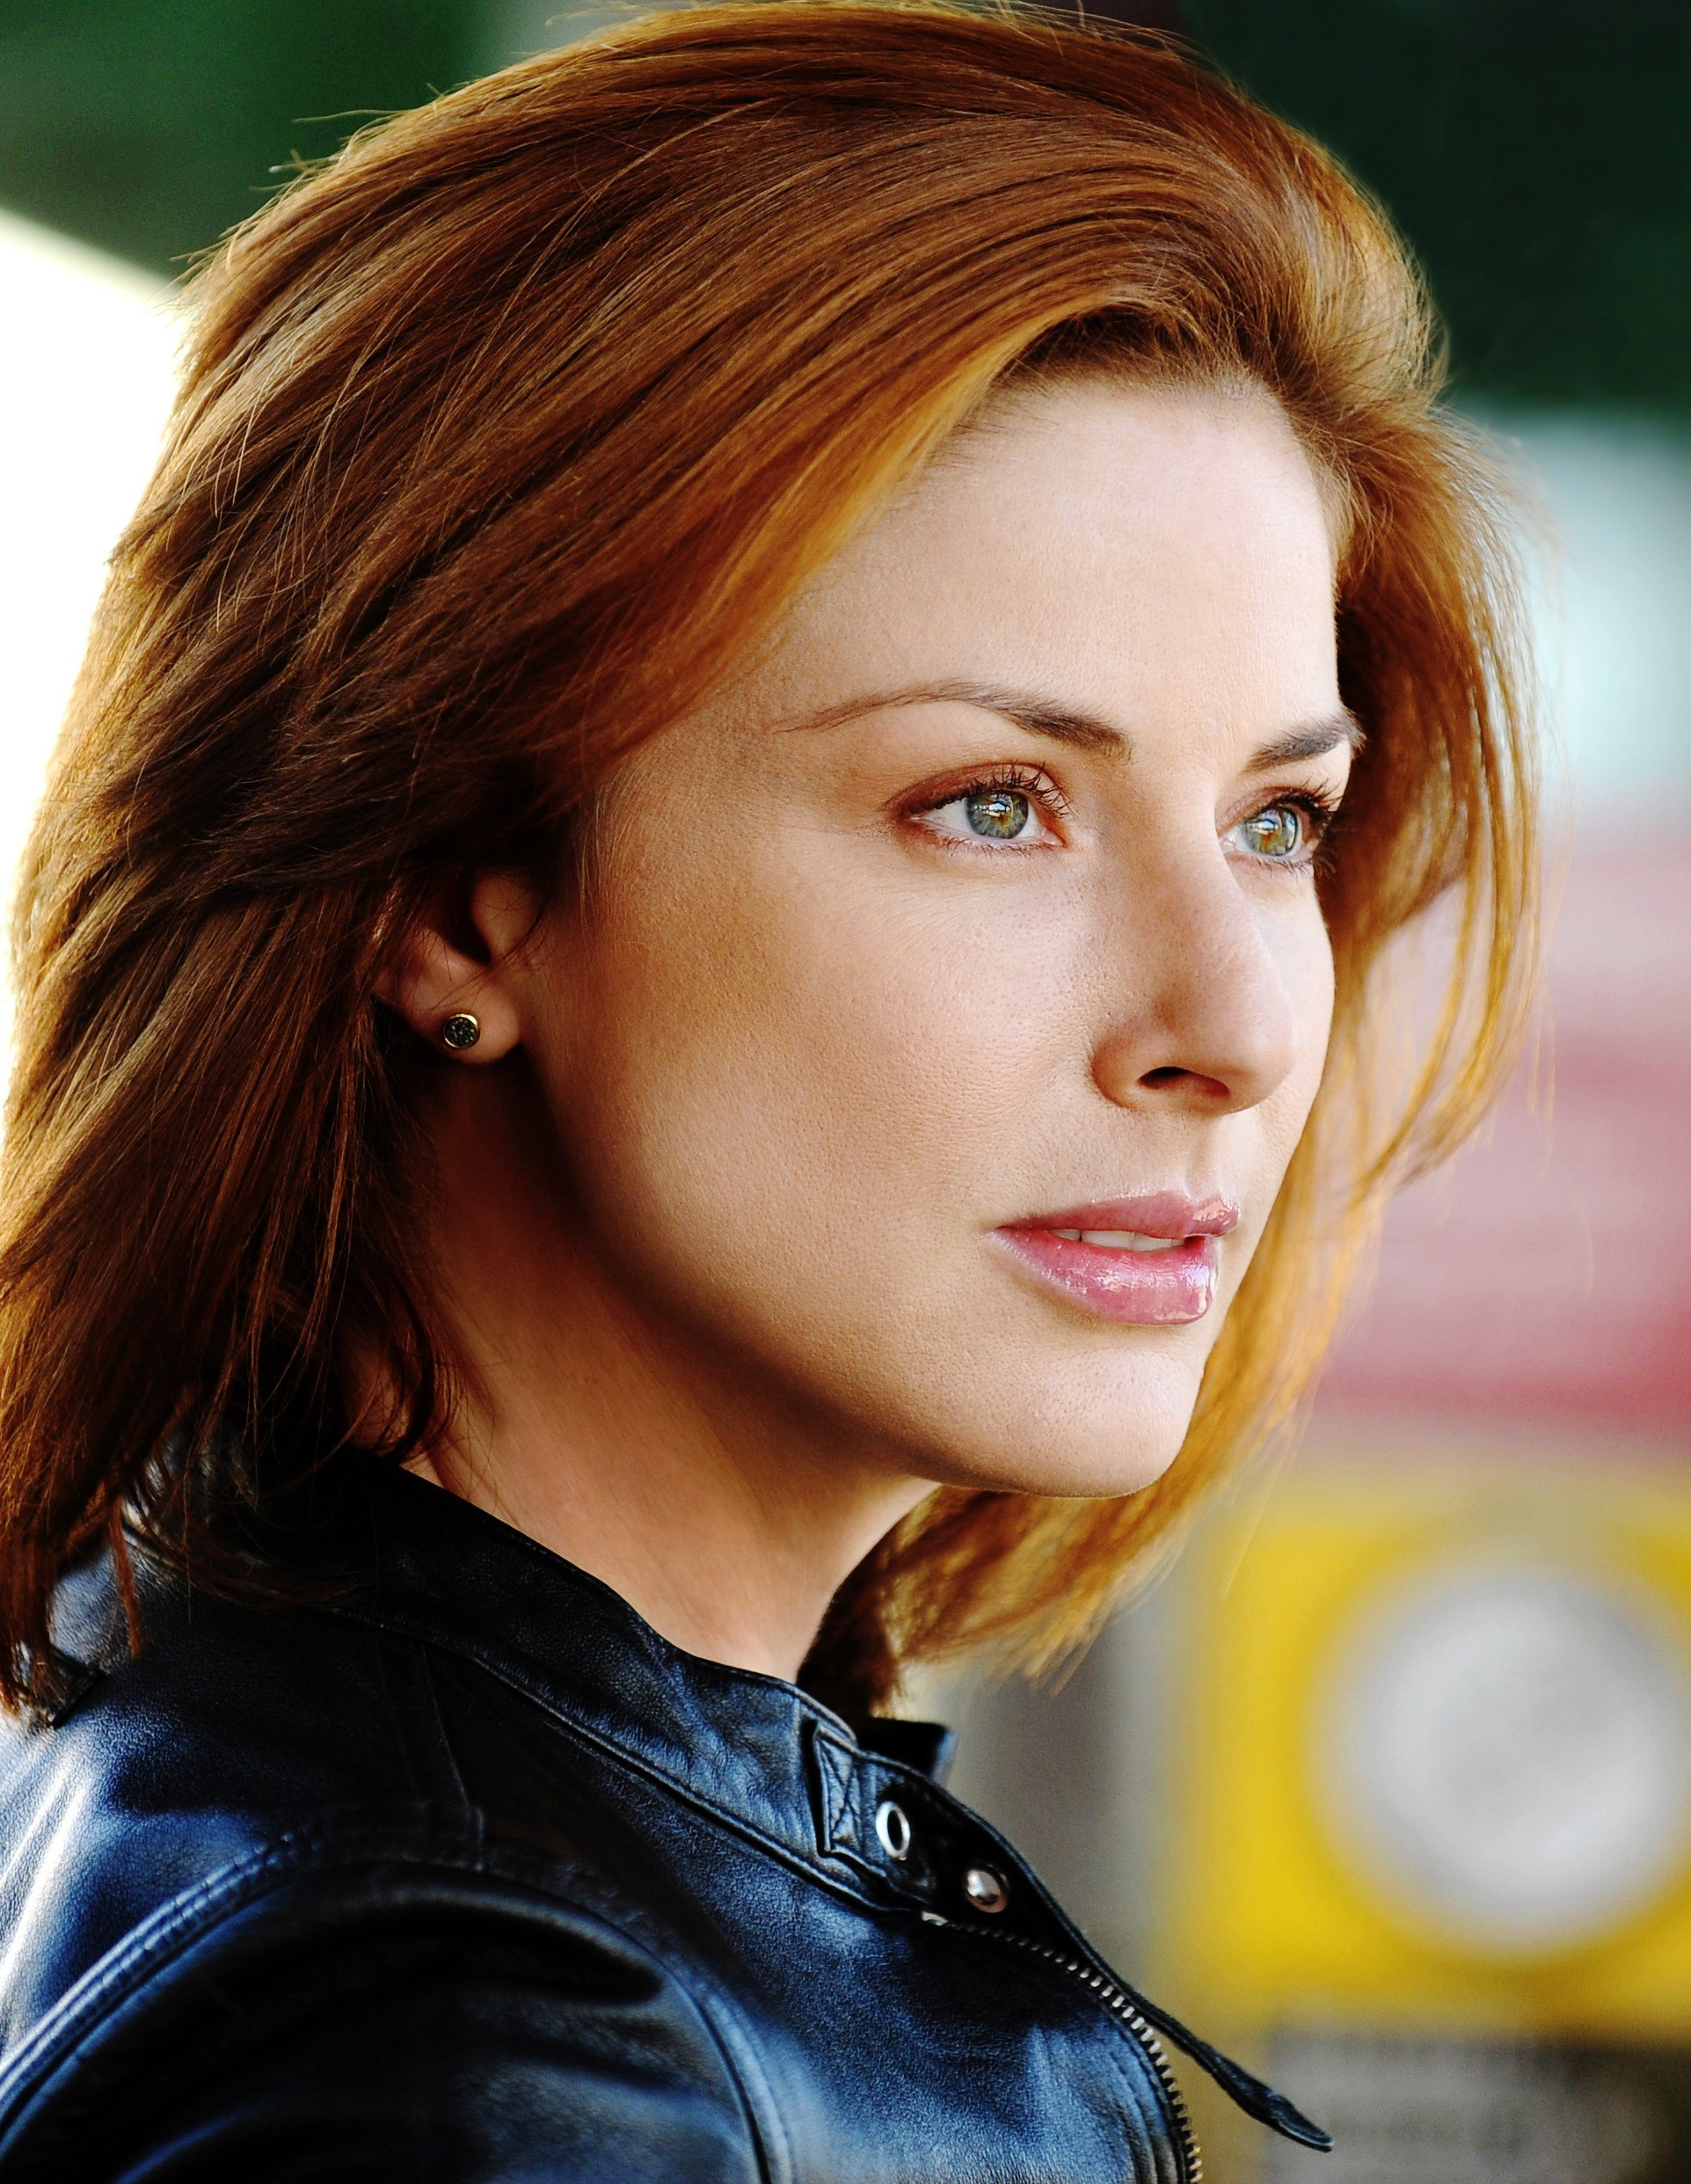 diane neal known people famous people news and biographies Manual Works Cited Manual Labor